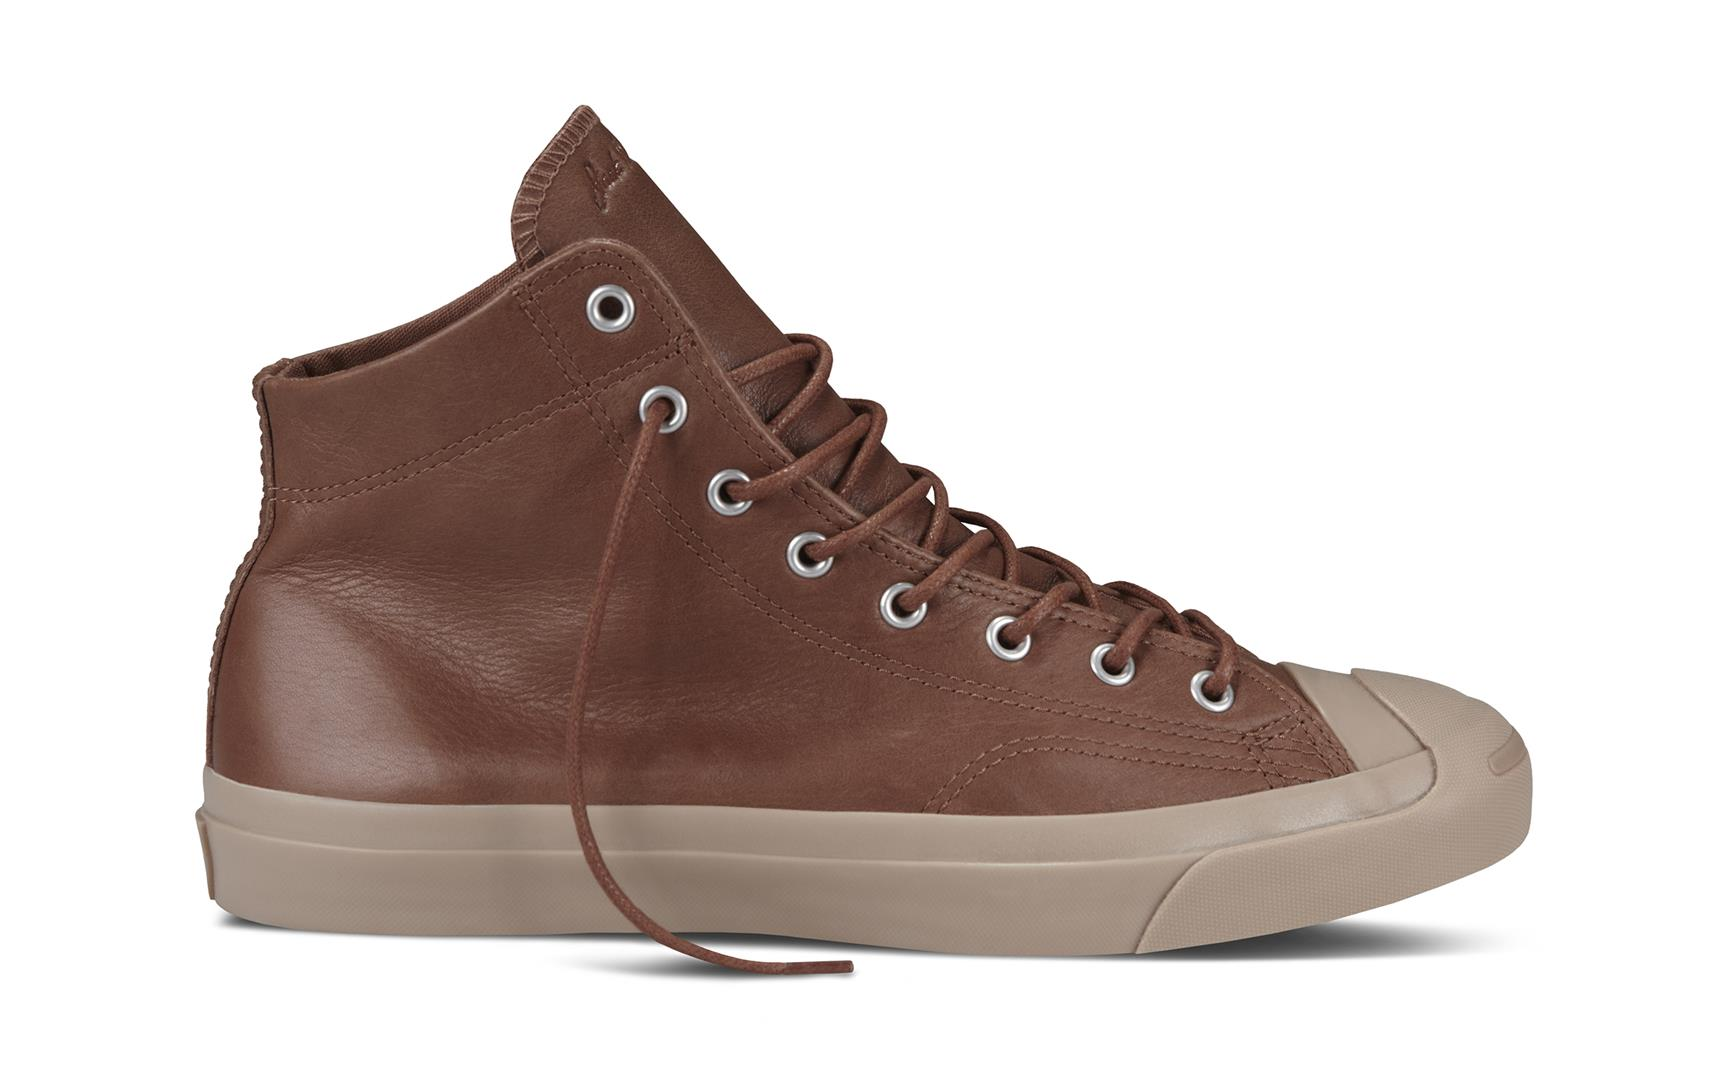 c196586e6cca Converse Jack Purcell Fall 2014 Pack